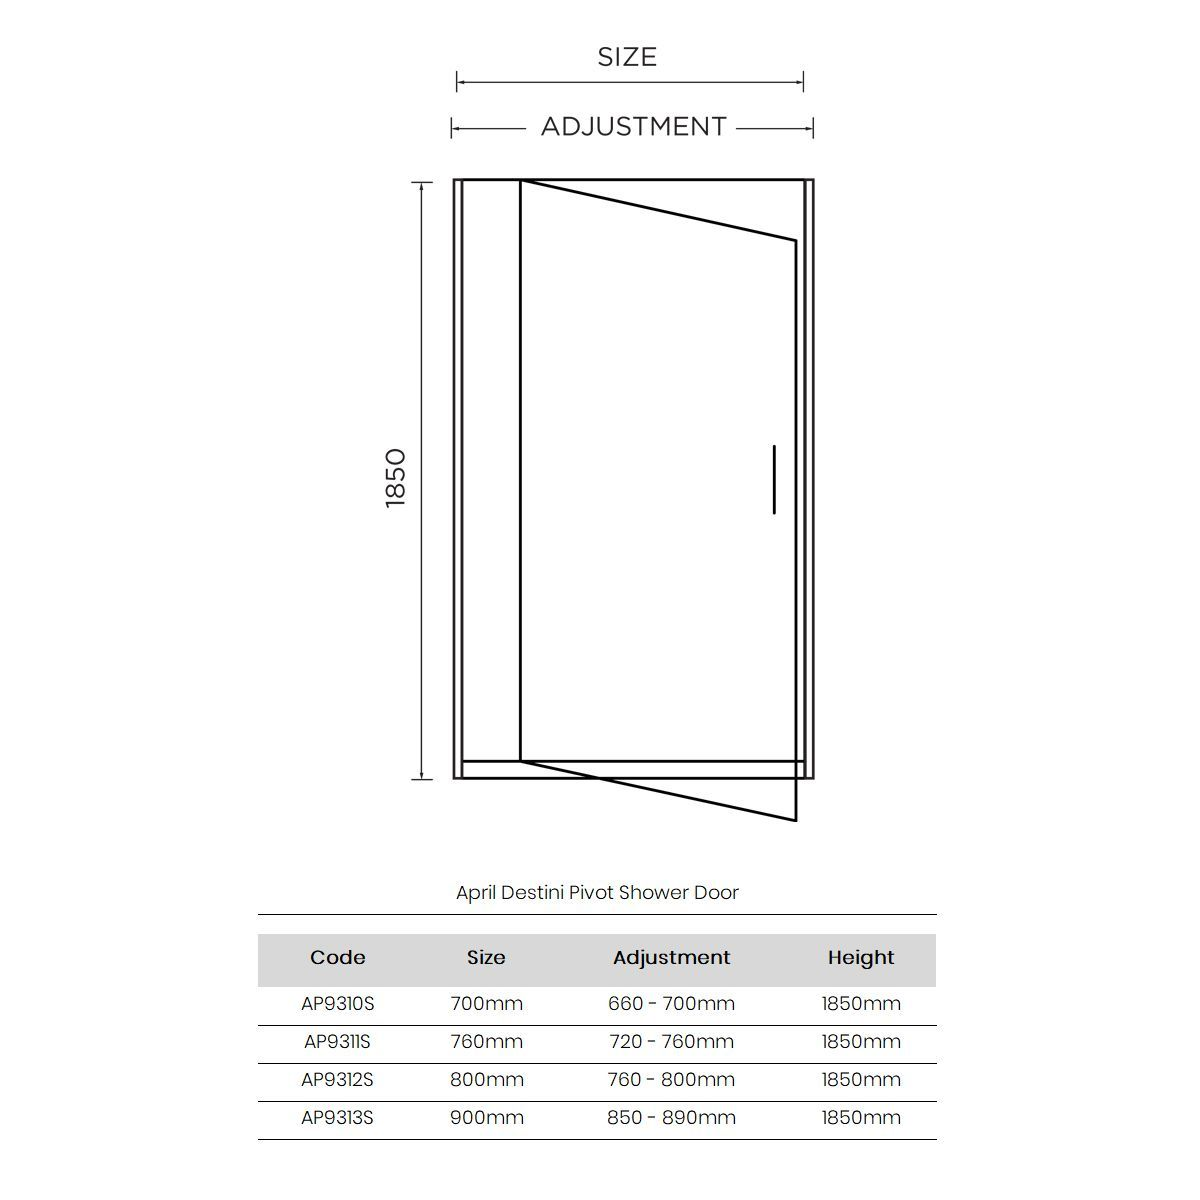 April Destini Pivot Shower Door with Optional Side Panel Dimensions